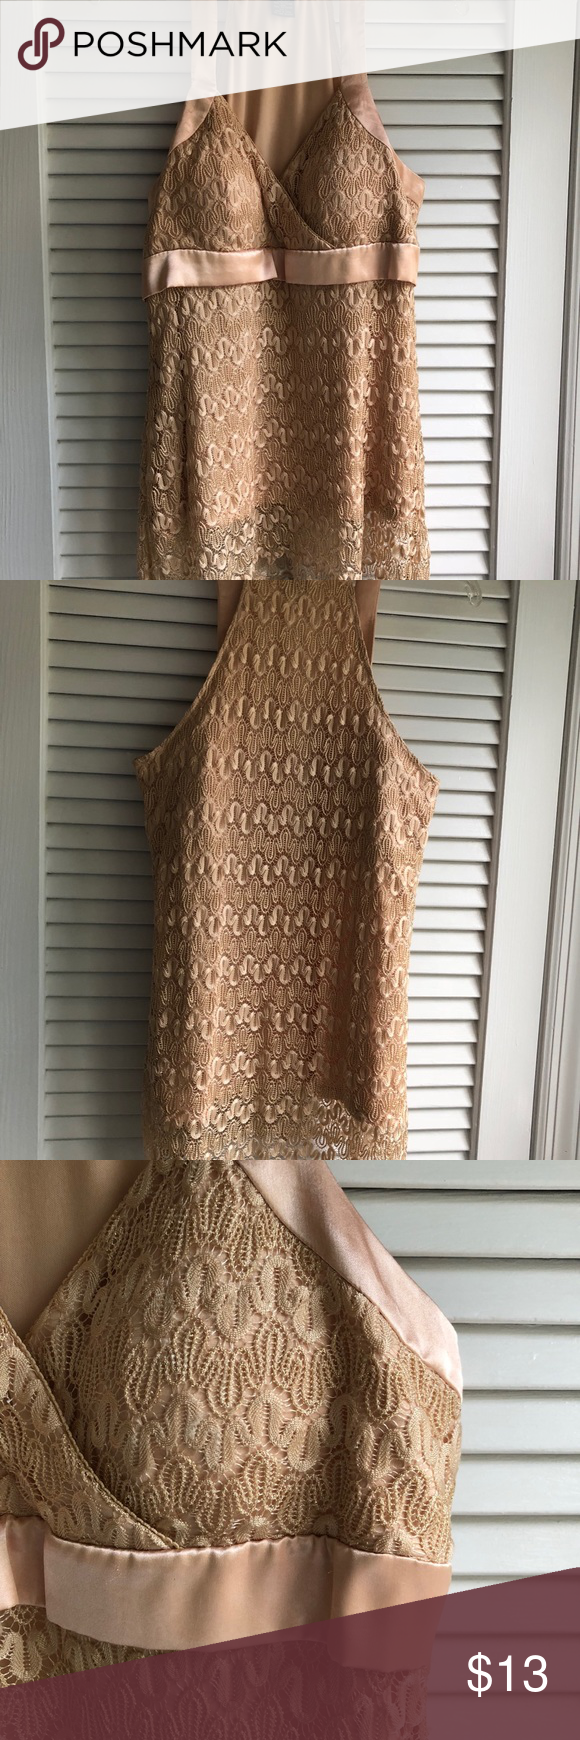 Lace with satin tan ladies top Beautiful lace and satin ladies halter top that's sure to get compliments. Very classy and elegant. New, never worn. Wear this top with a pair of jeans and pumps, or with a pair of white slacks. Runs a bit small for a L on tag, Gorgeous top.